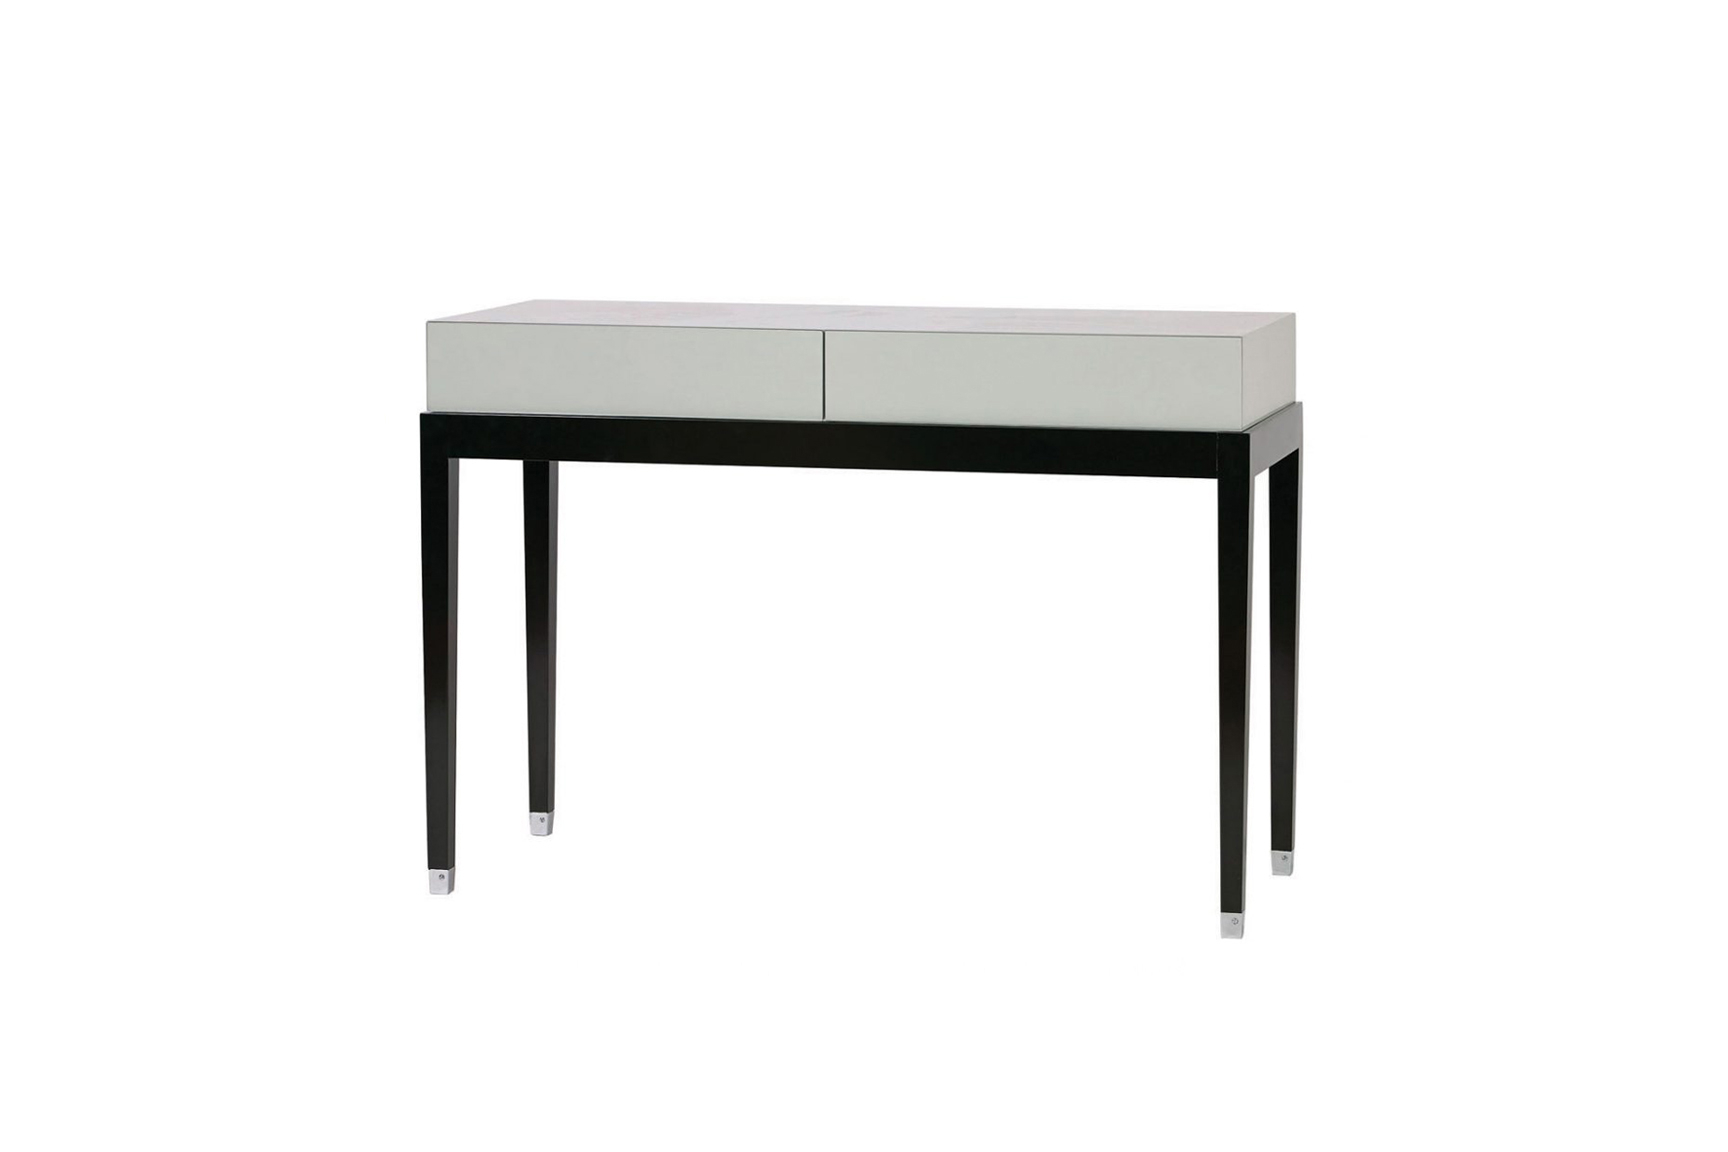 Archive Grey Console Tables Within Trendy Console Tables Archives – Jan Cavelle (View 4 of 20)